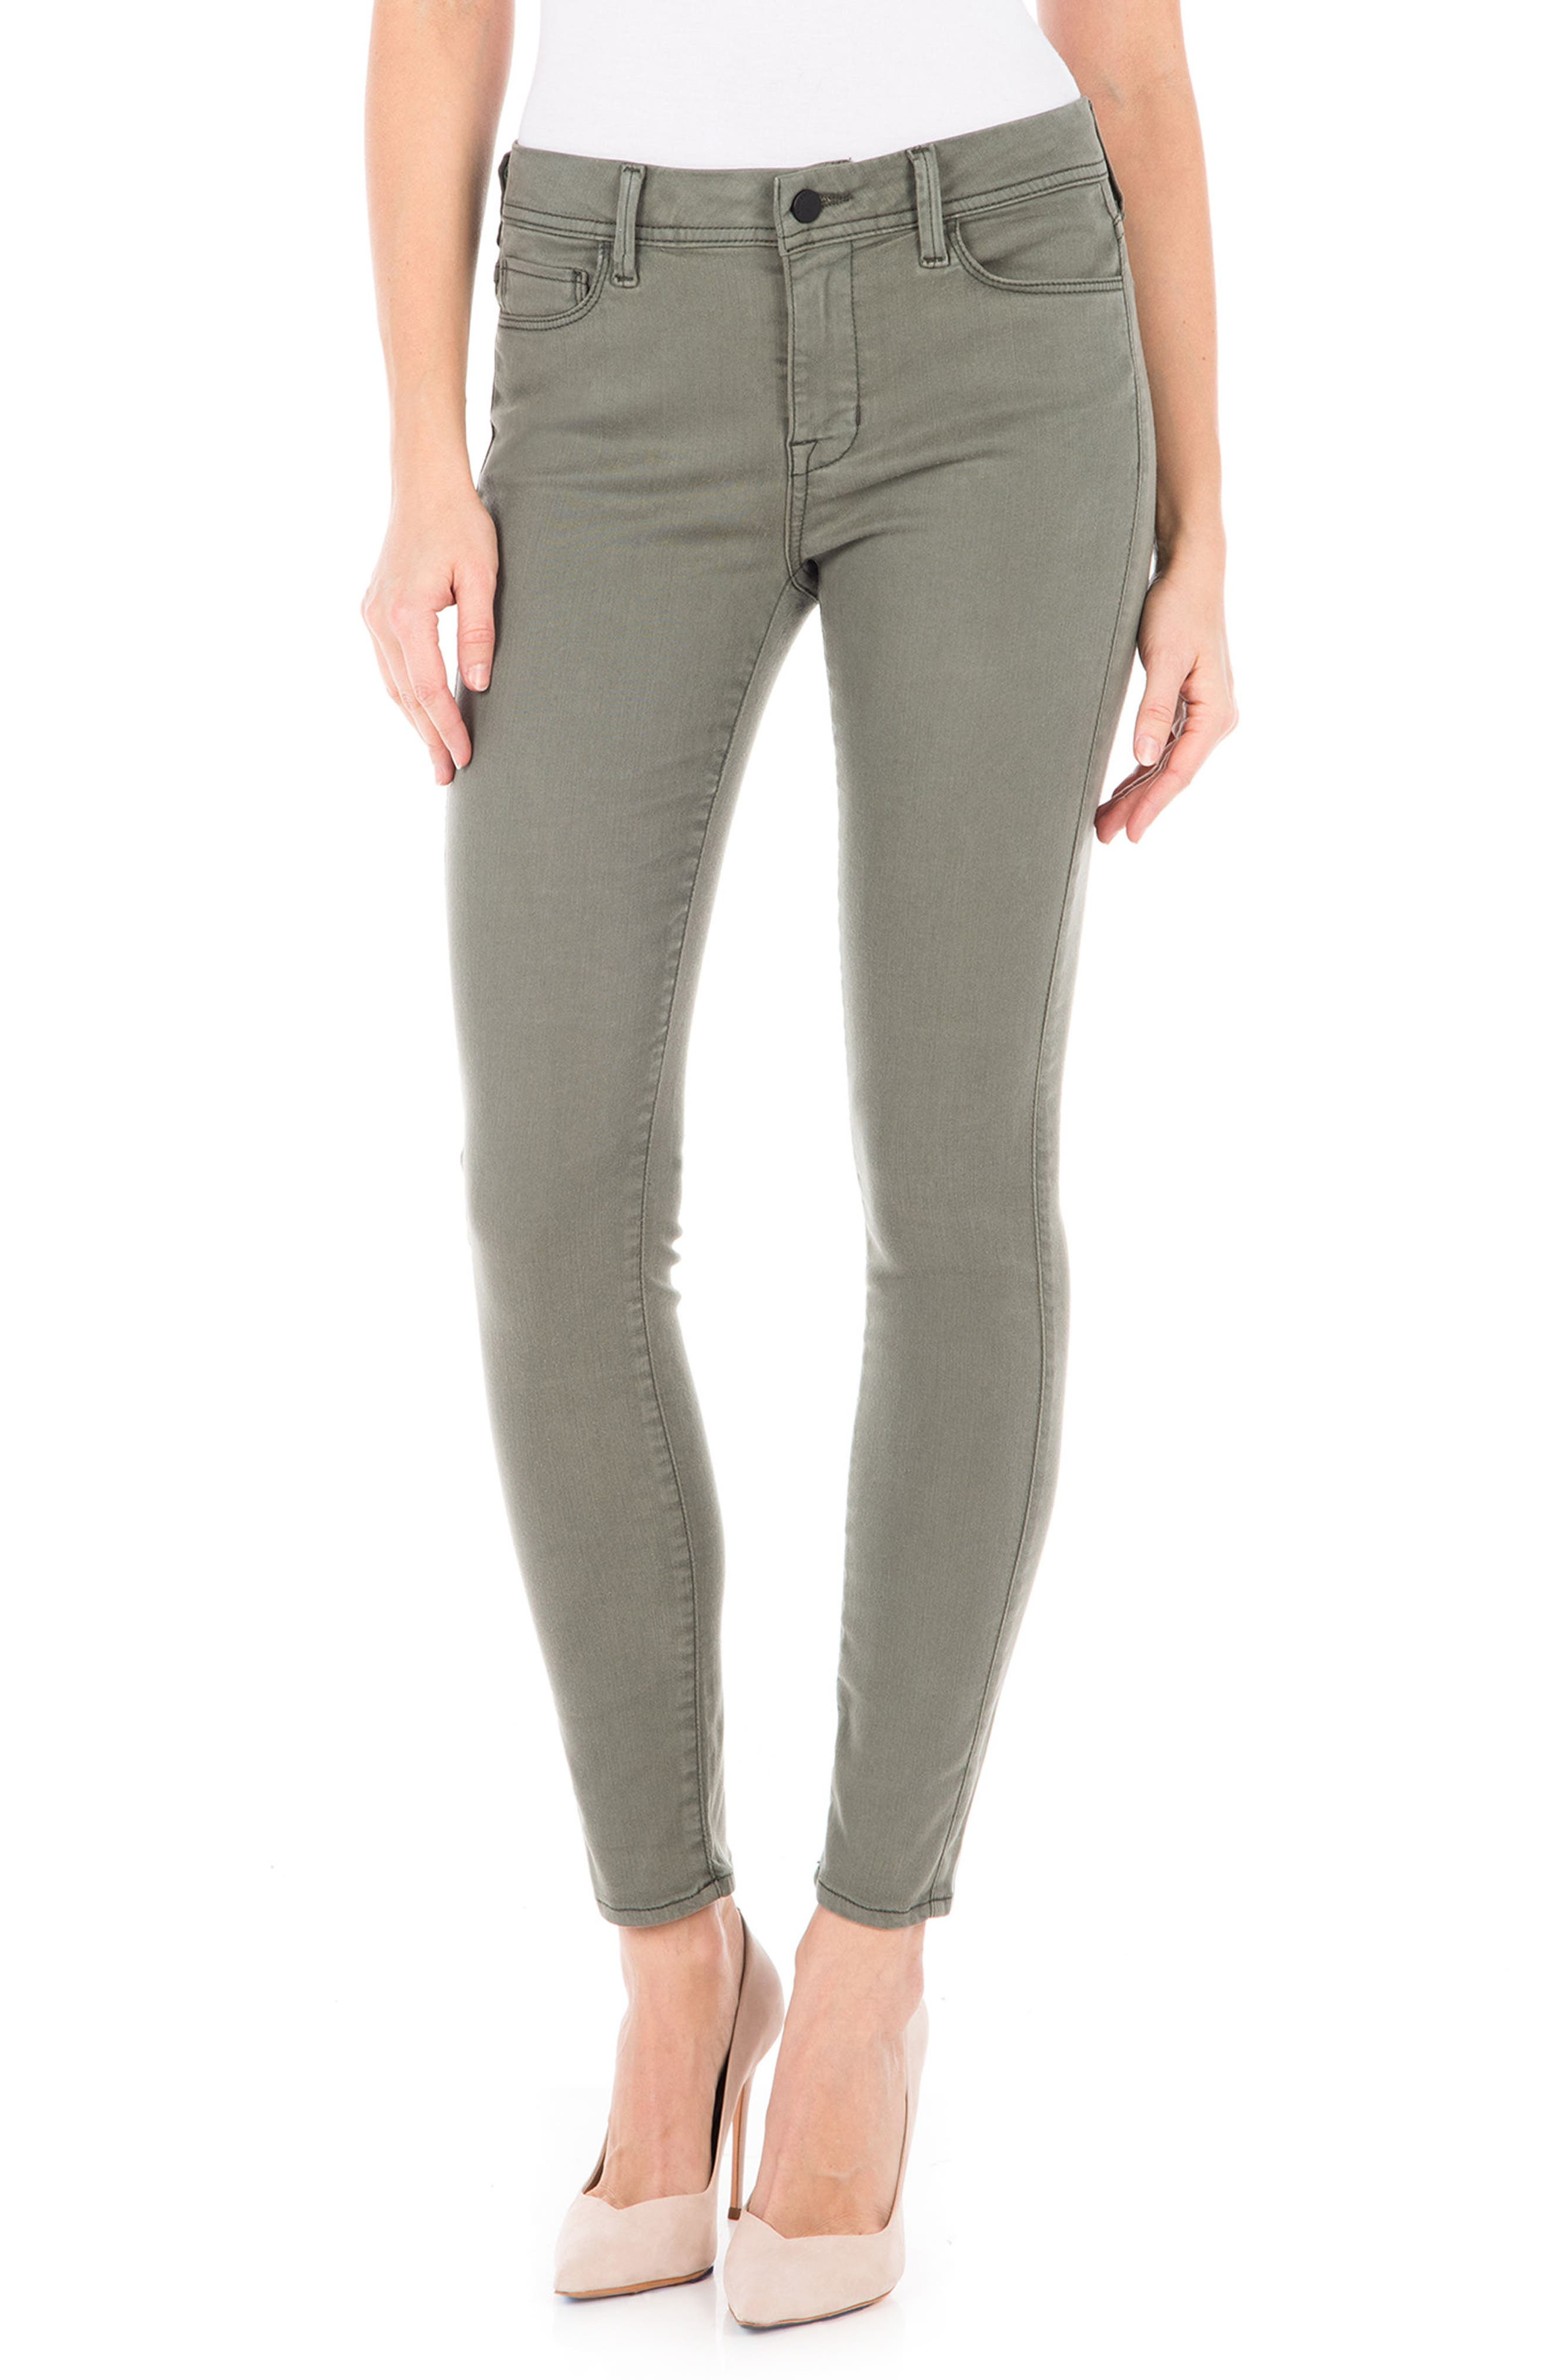 Sola Skinny Jeans,                         Main,                         color, 300